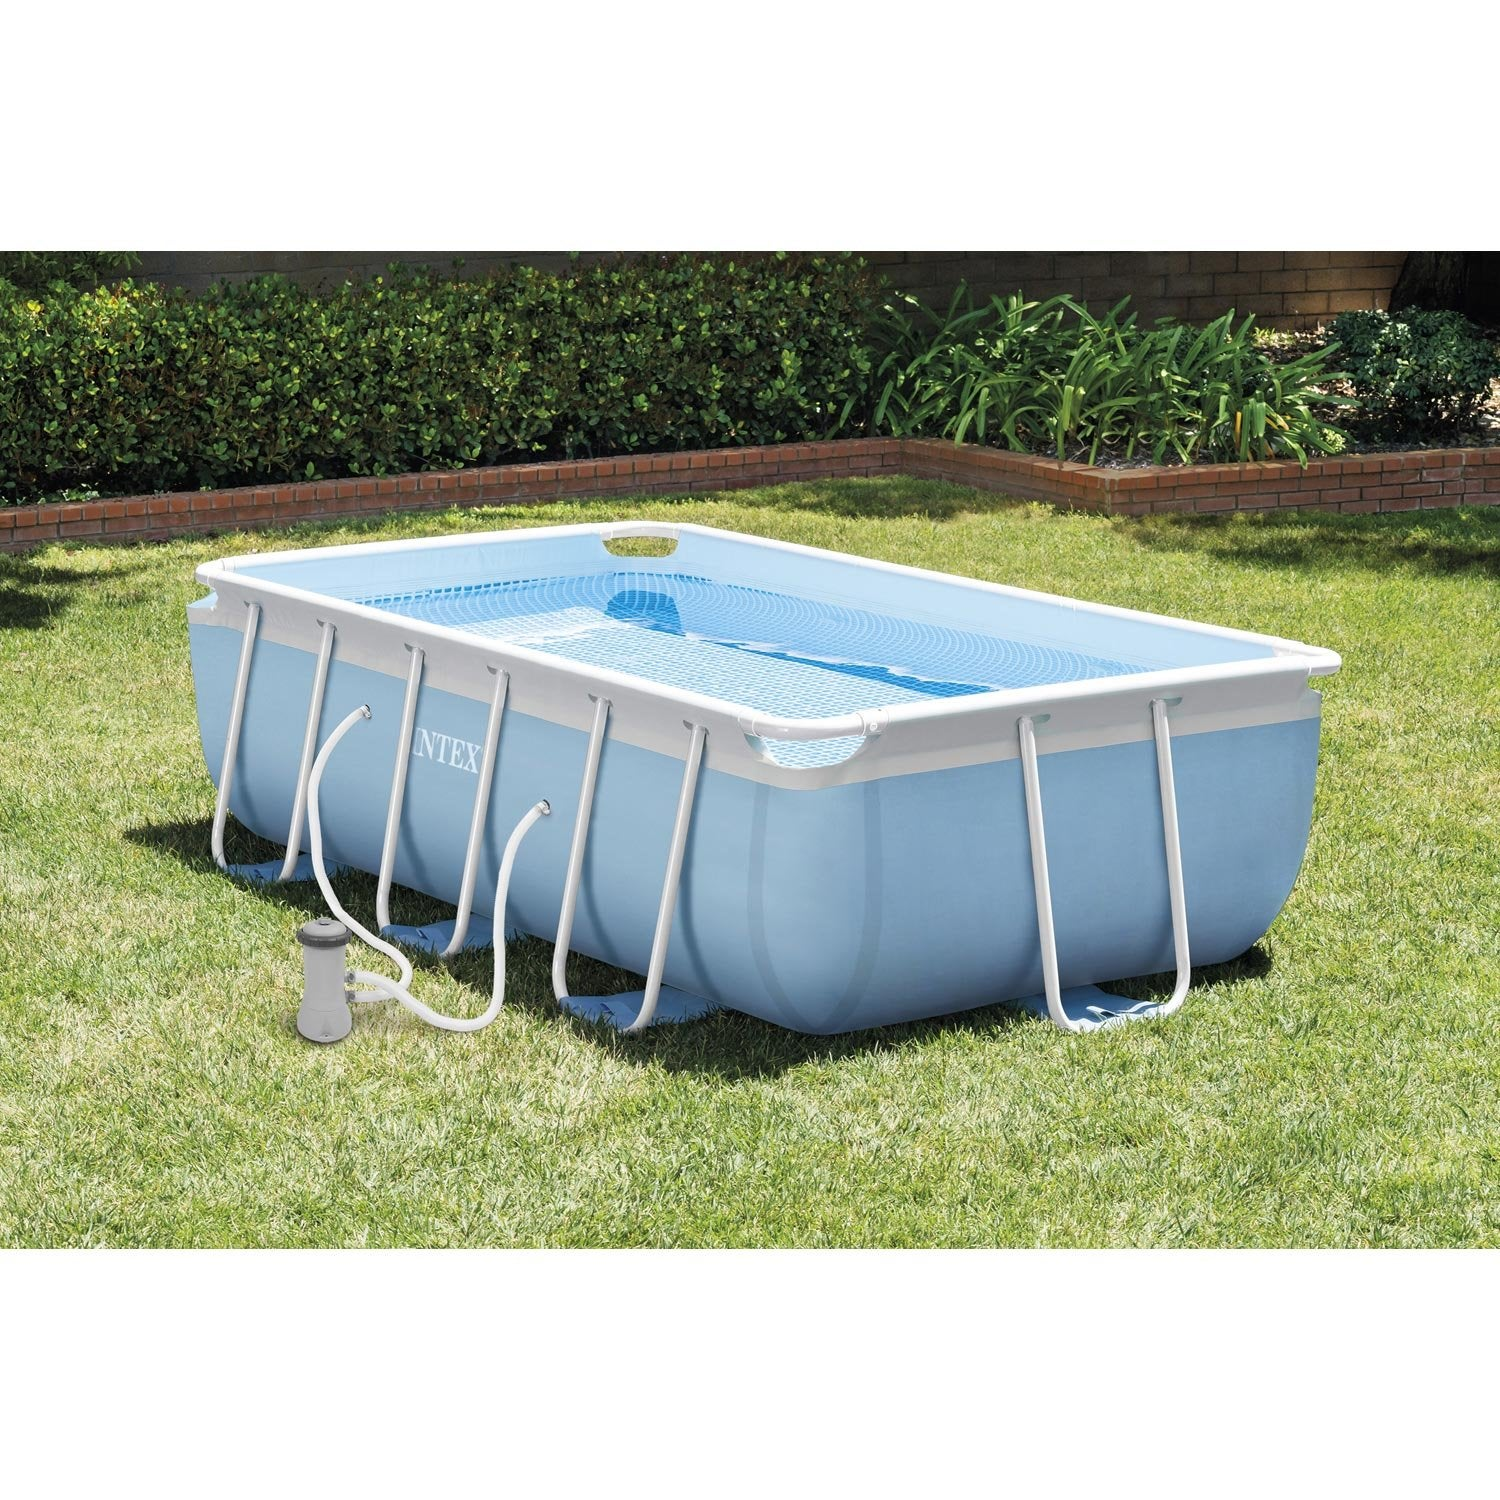 Piscine Hors Sol Autoportante Tubulaire Intex L 3 4 X L 2